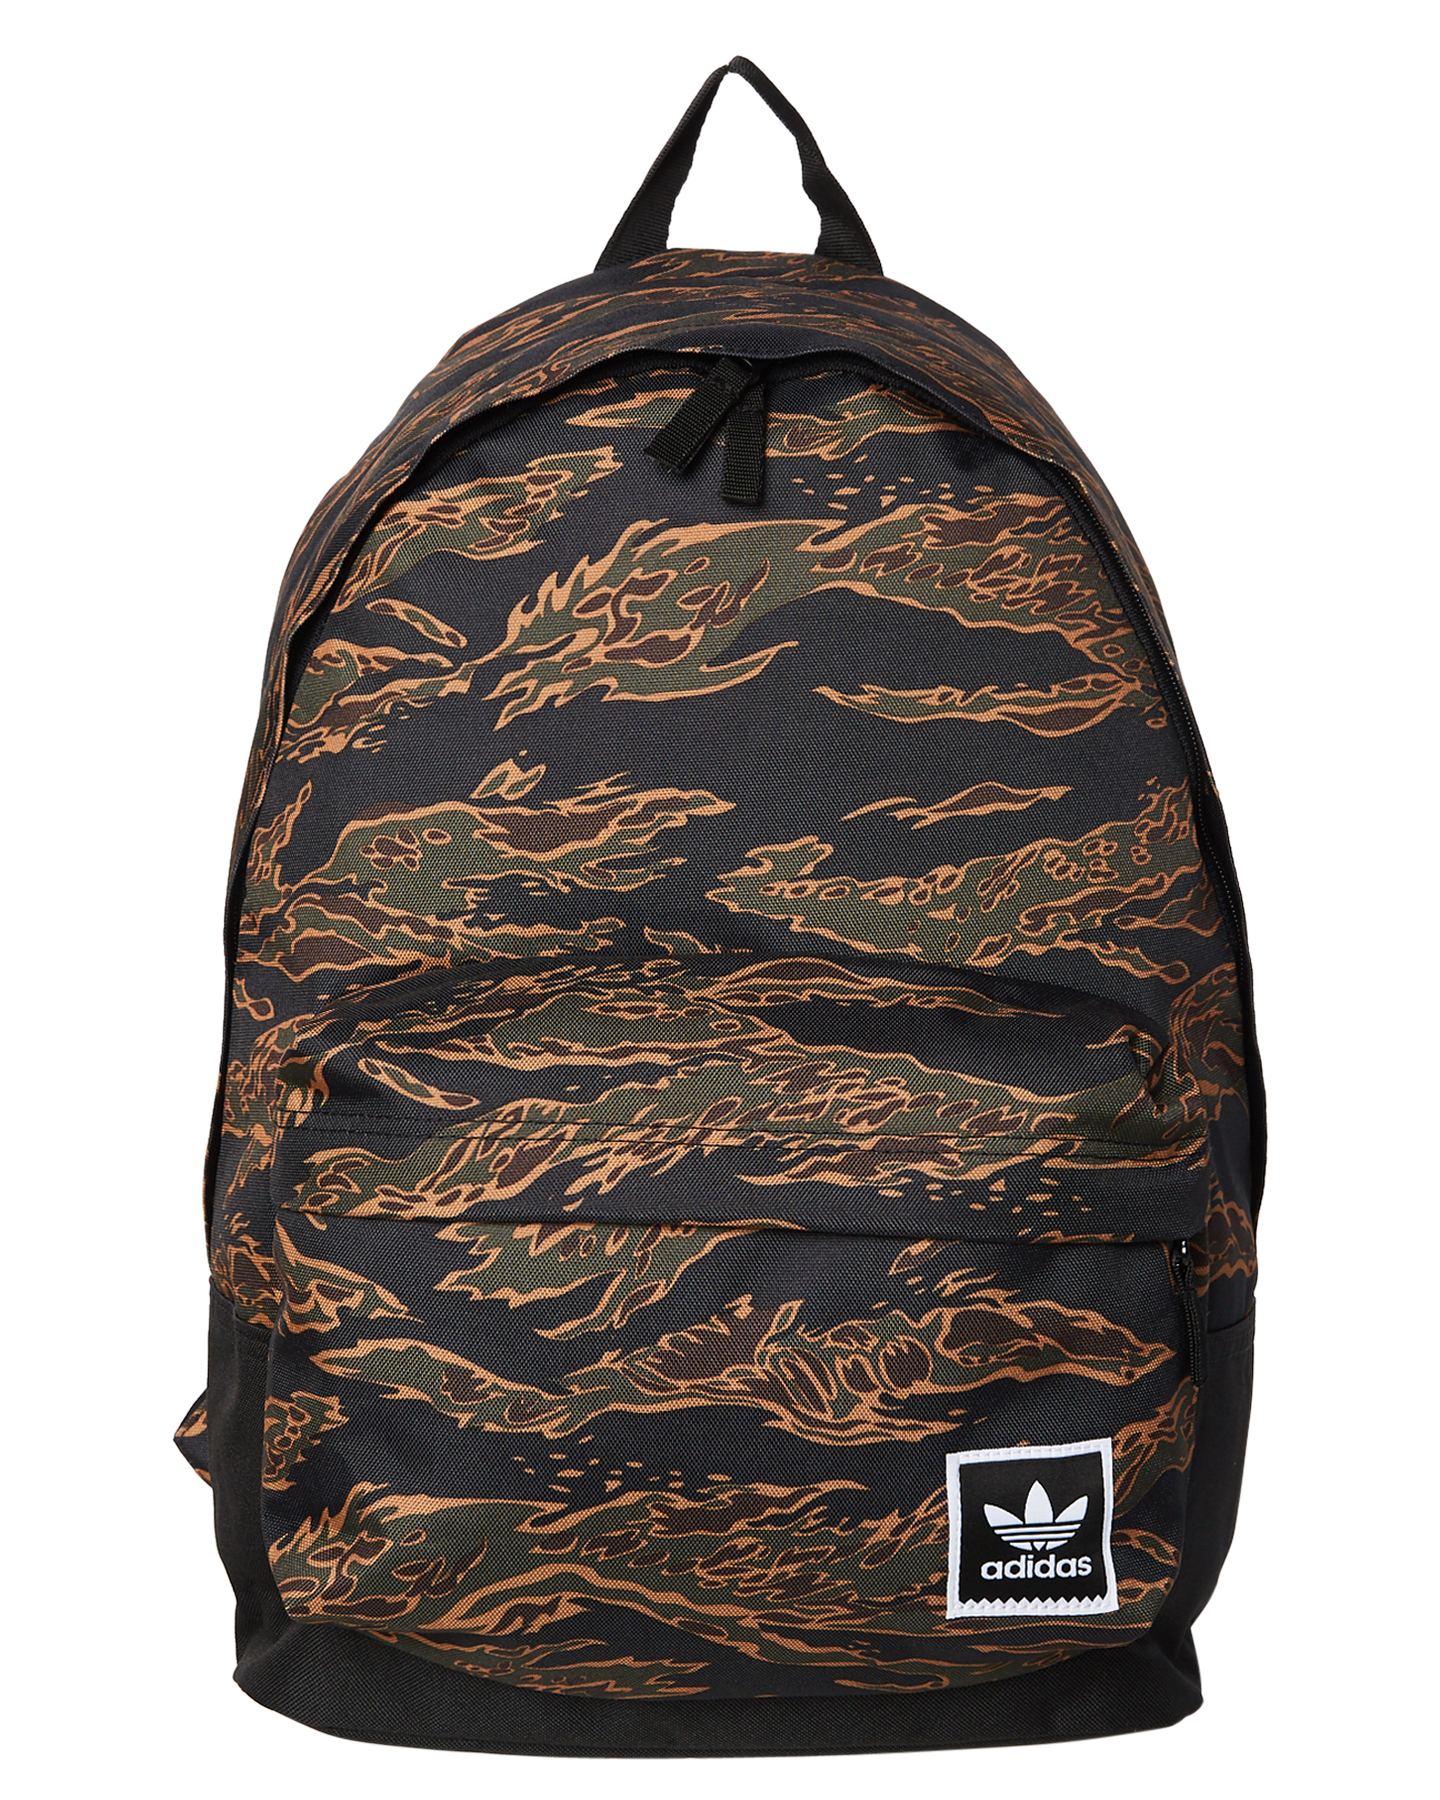 Adidas Tiger Camouflage Backpack Green Mens leisure bags Size ... 5705632f5d626